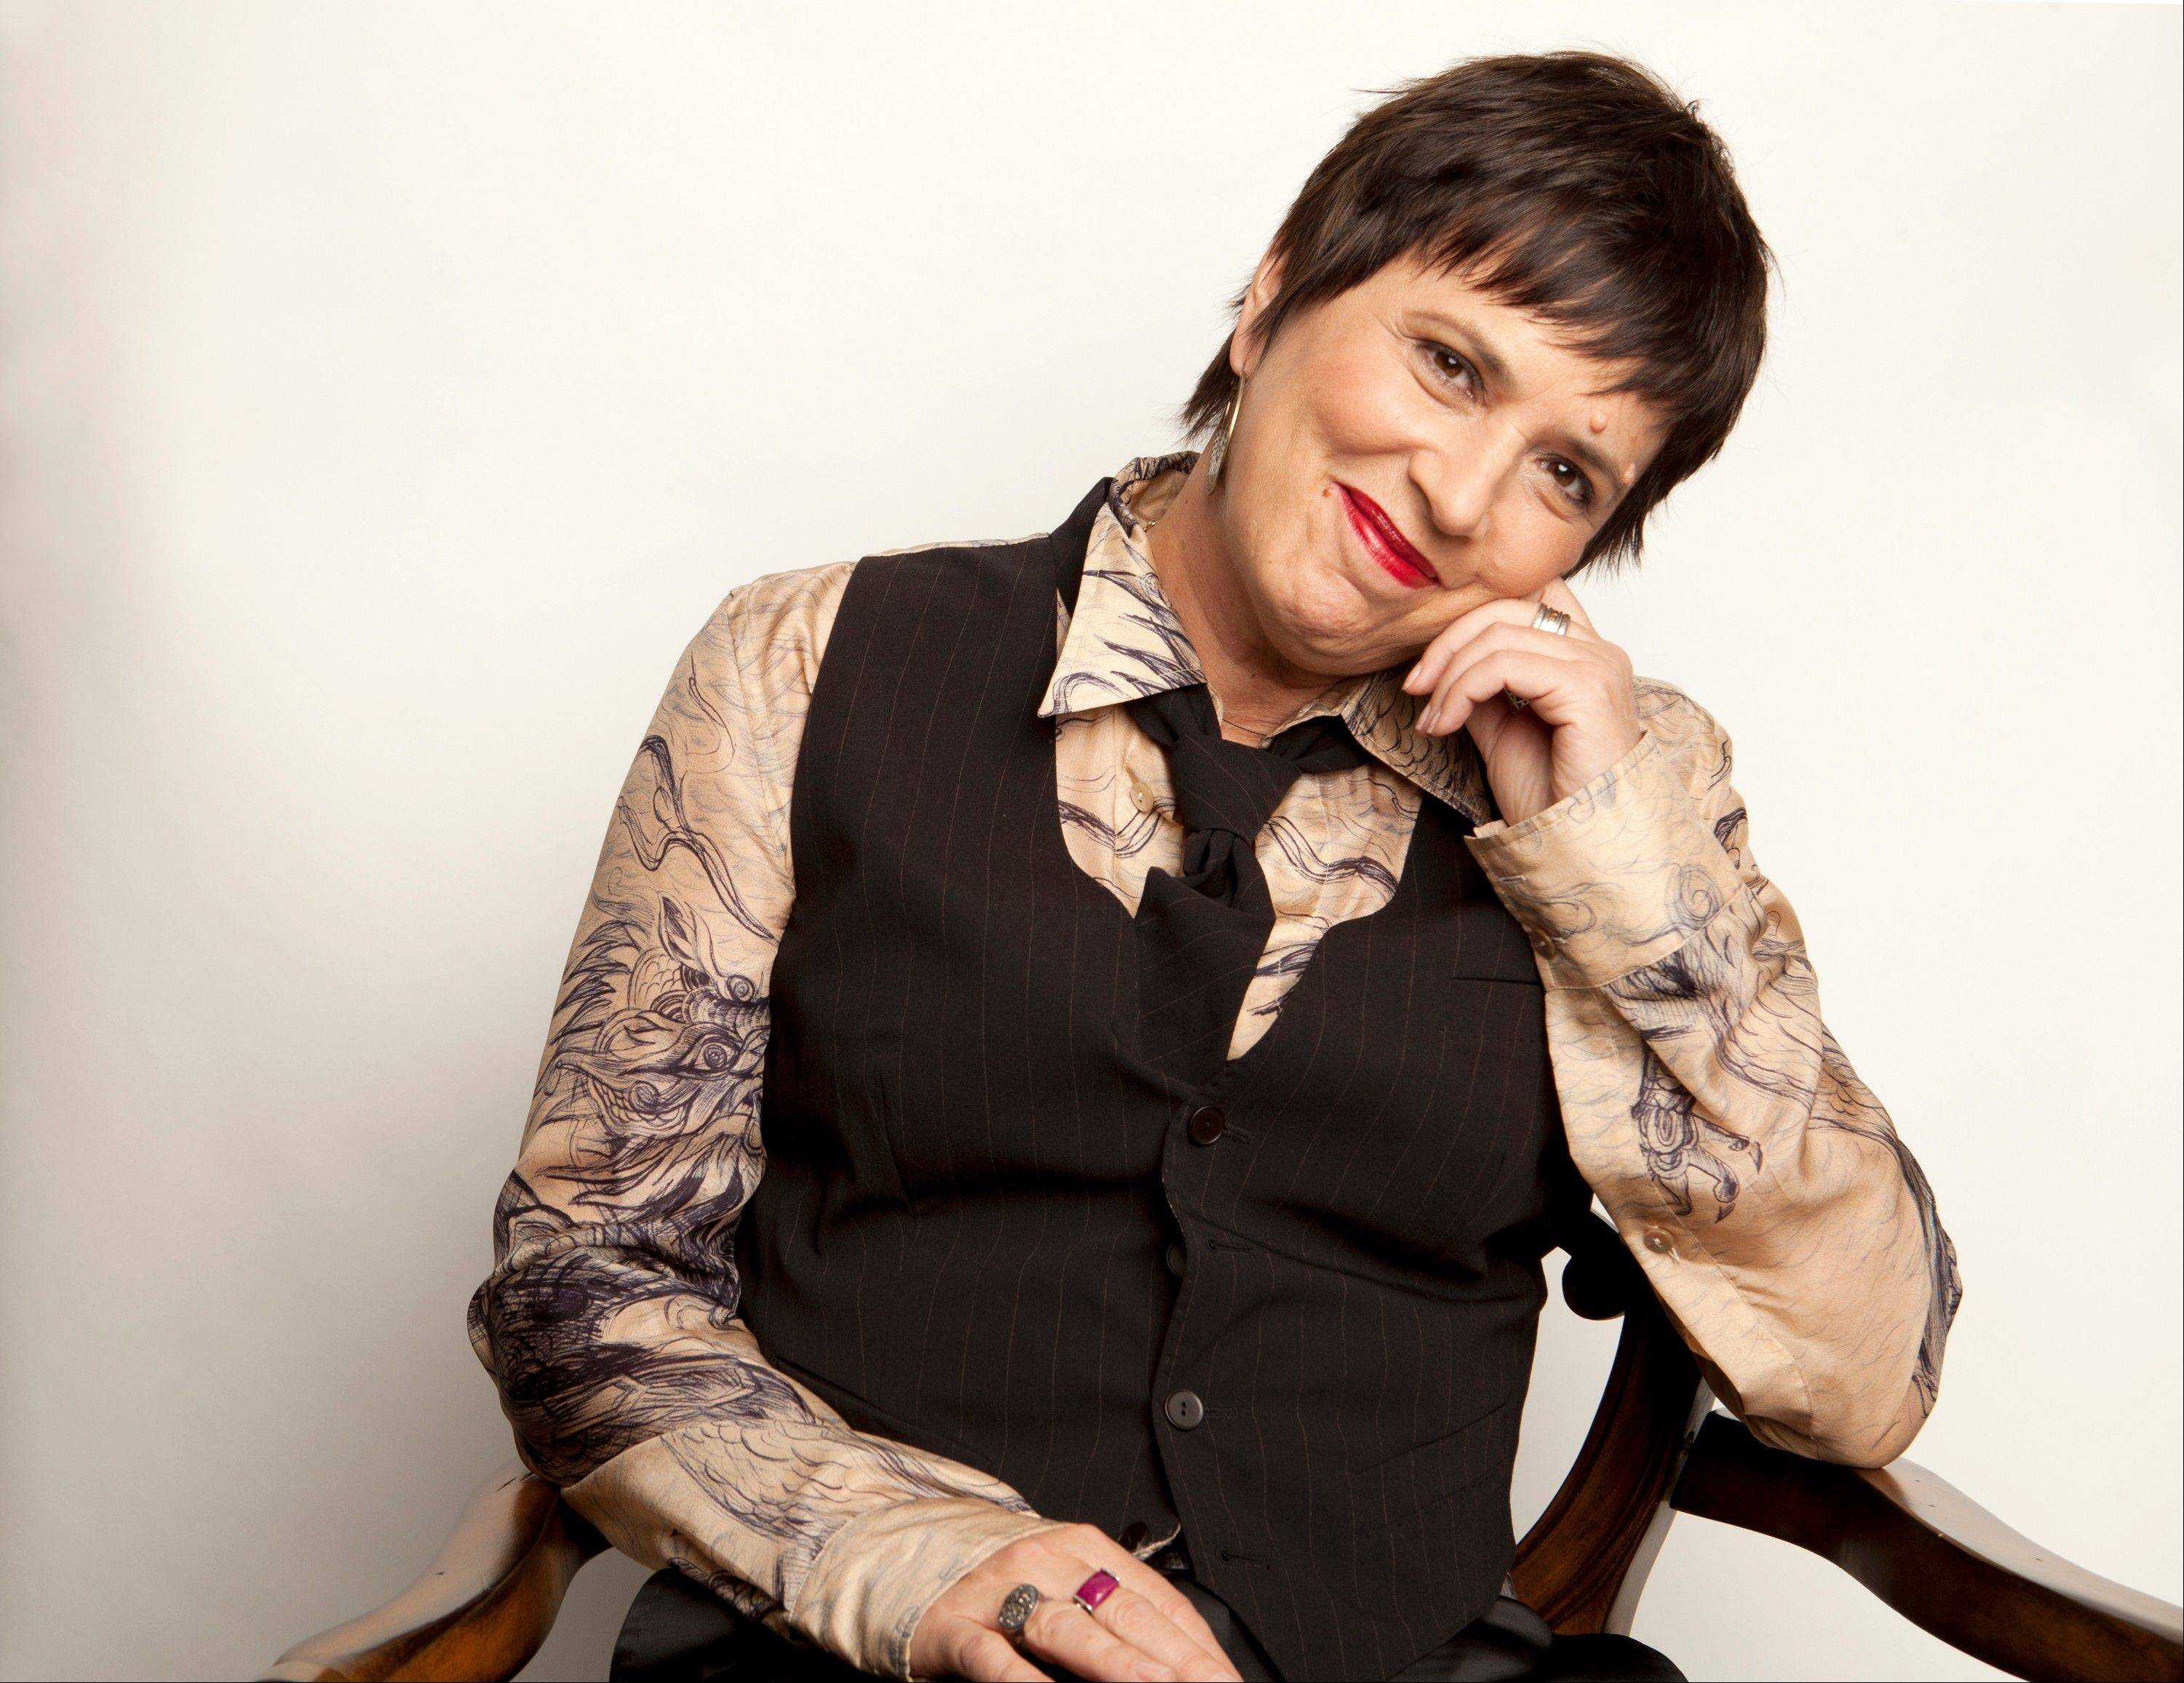 American playwright and Broadway producer Eve Ensler speaks out when she sees injustice in the world.